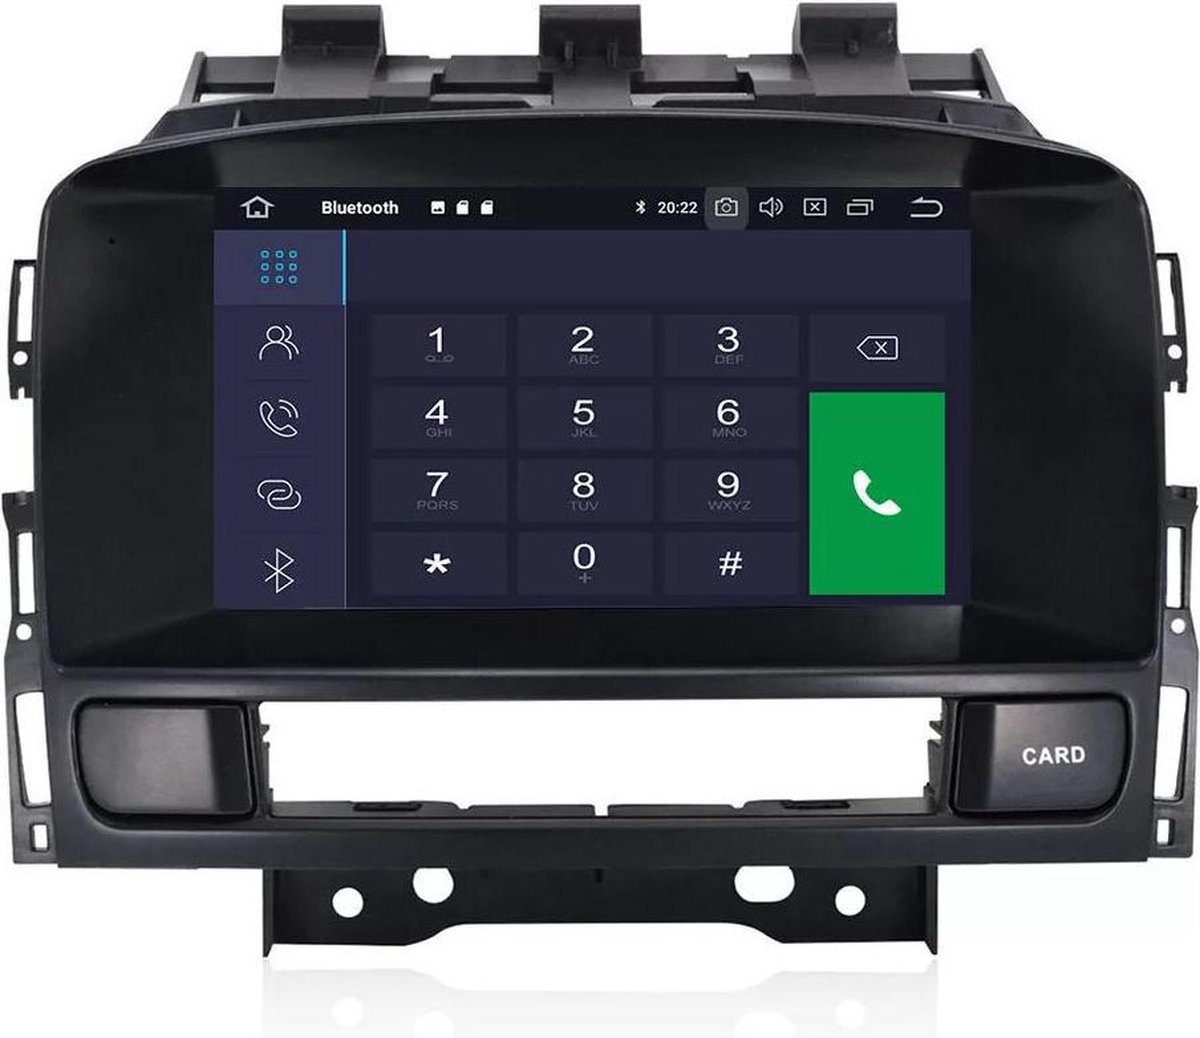 Opel Astra J 2009-2015 Android 9.0 navigatie 2+16GB